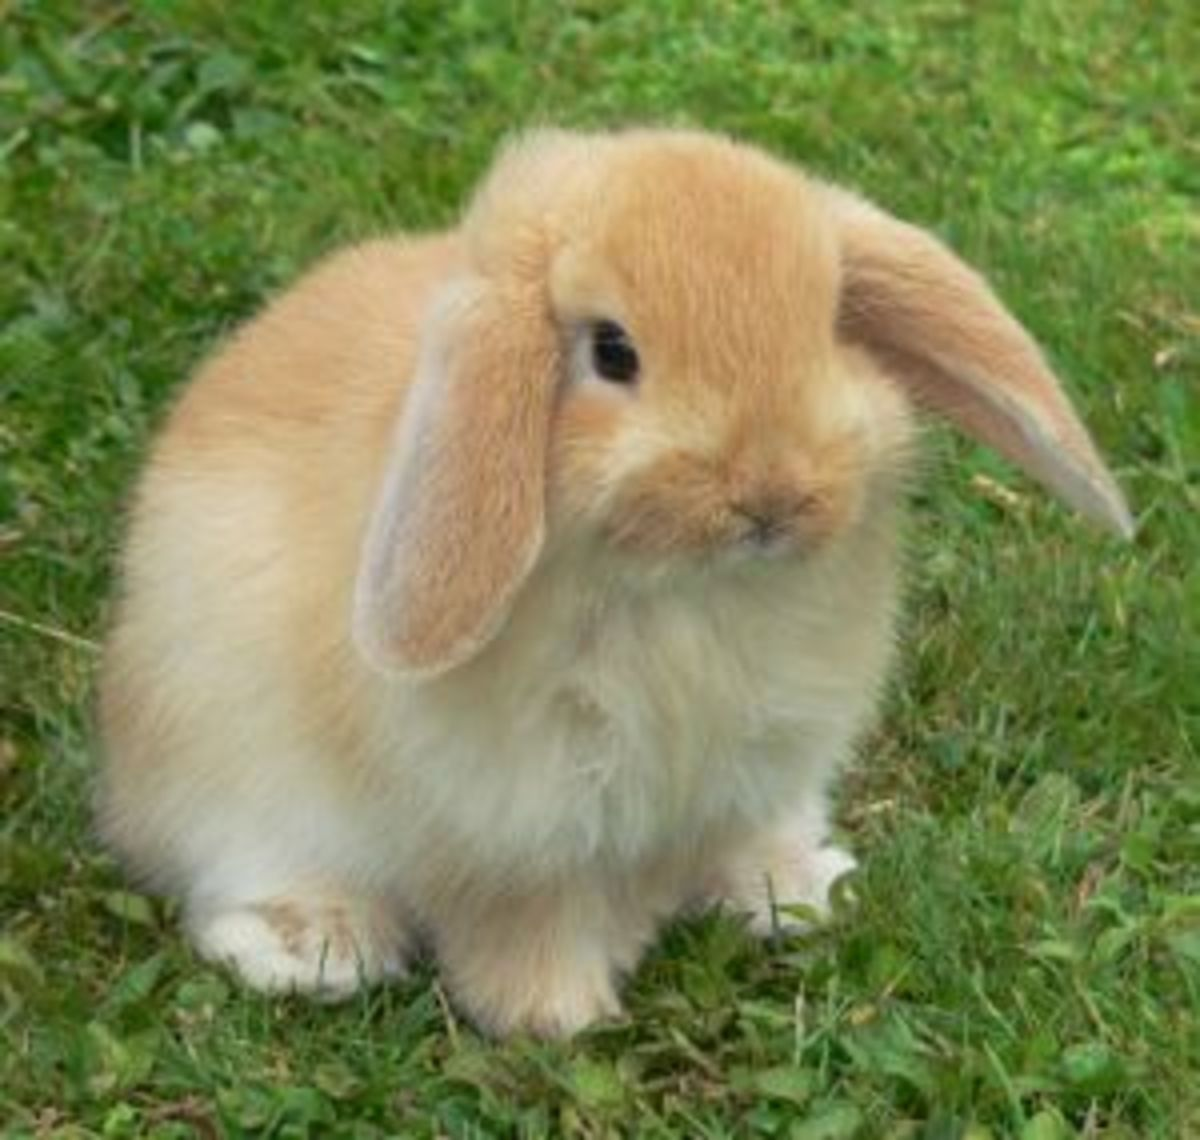 Bunny Breed Guide: Mini Lop/ Holland Lop Rabbits